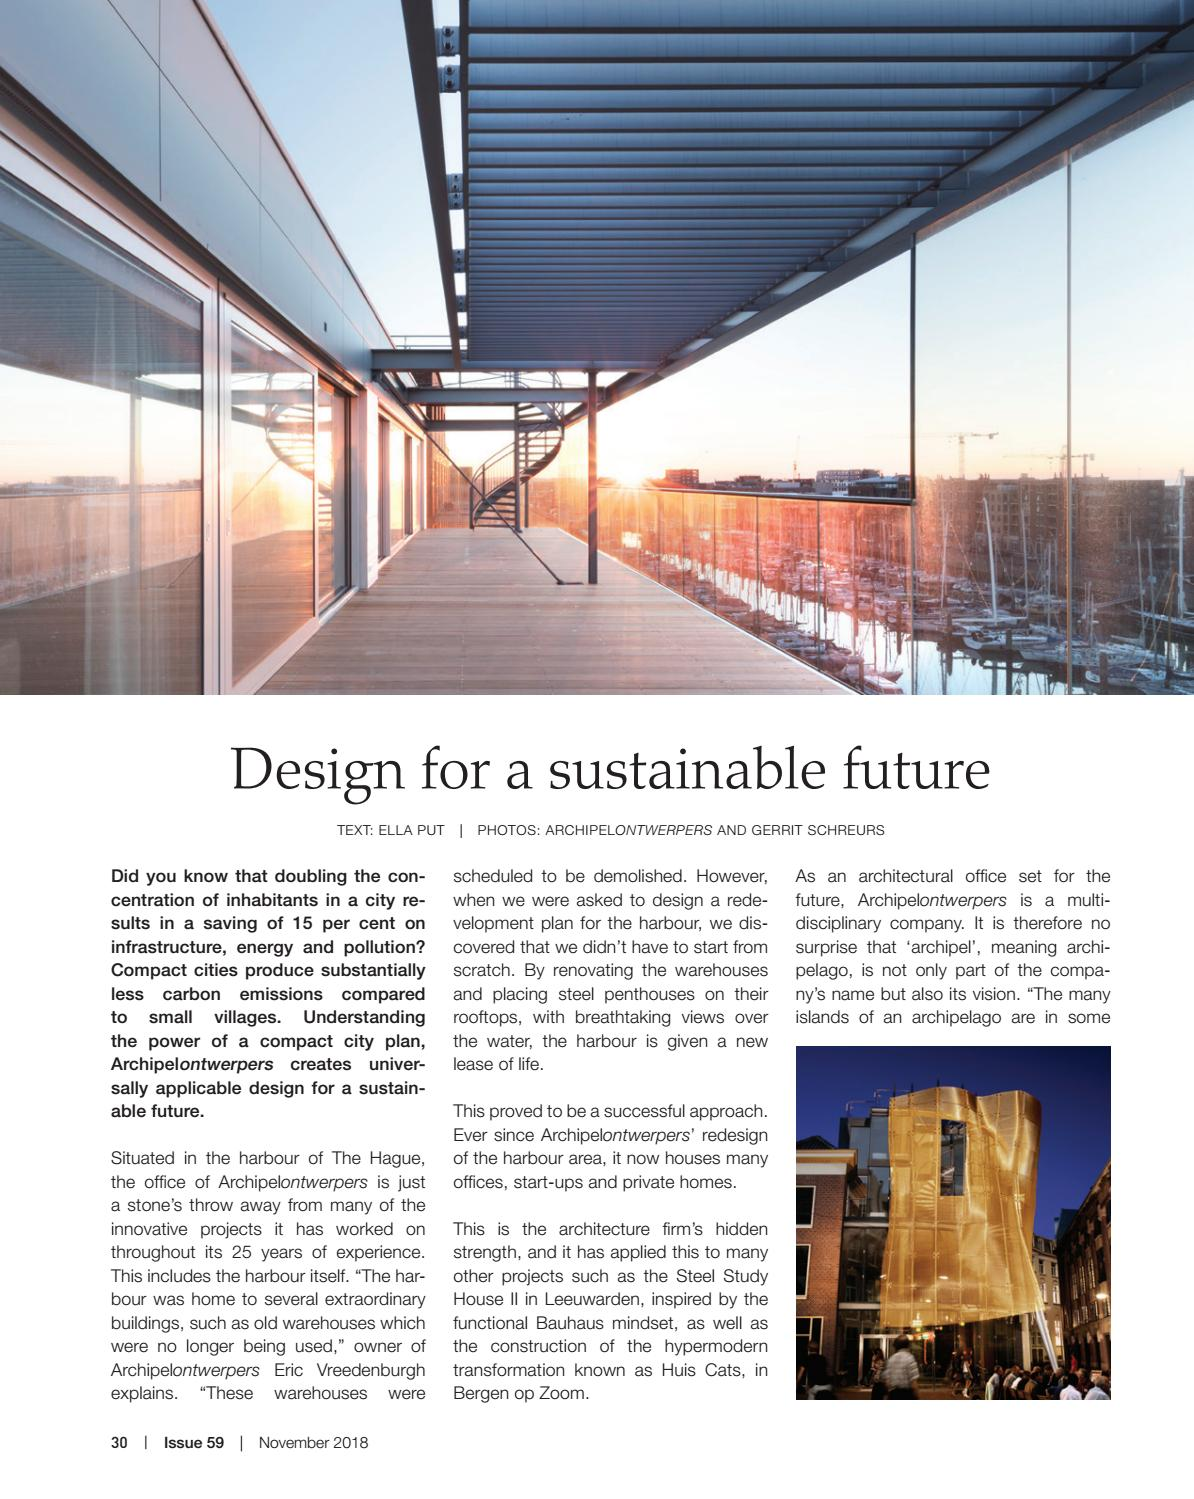 Discover Benelux, Issue 59, November 2018 by Scan Group - issuu